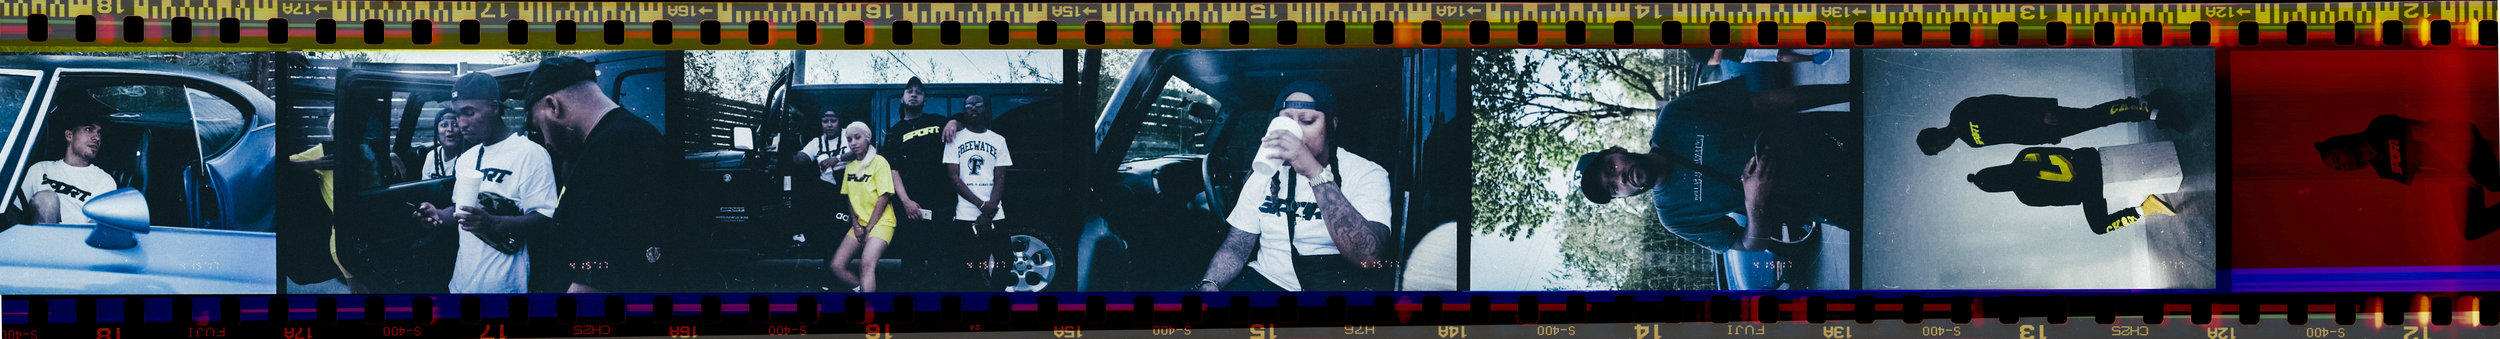 CKDO 35MM FILM BY LEXANDER BRYANT -- ORGNZD VISUALS